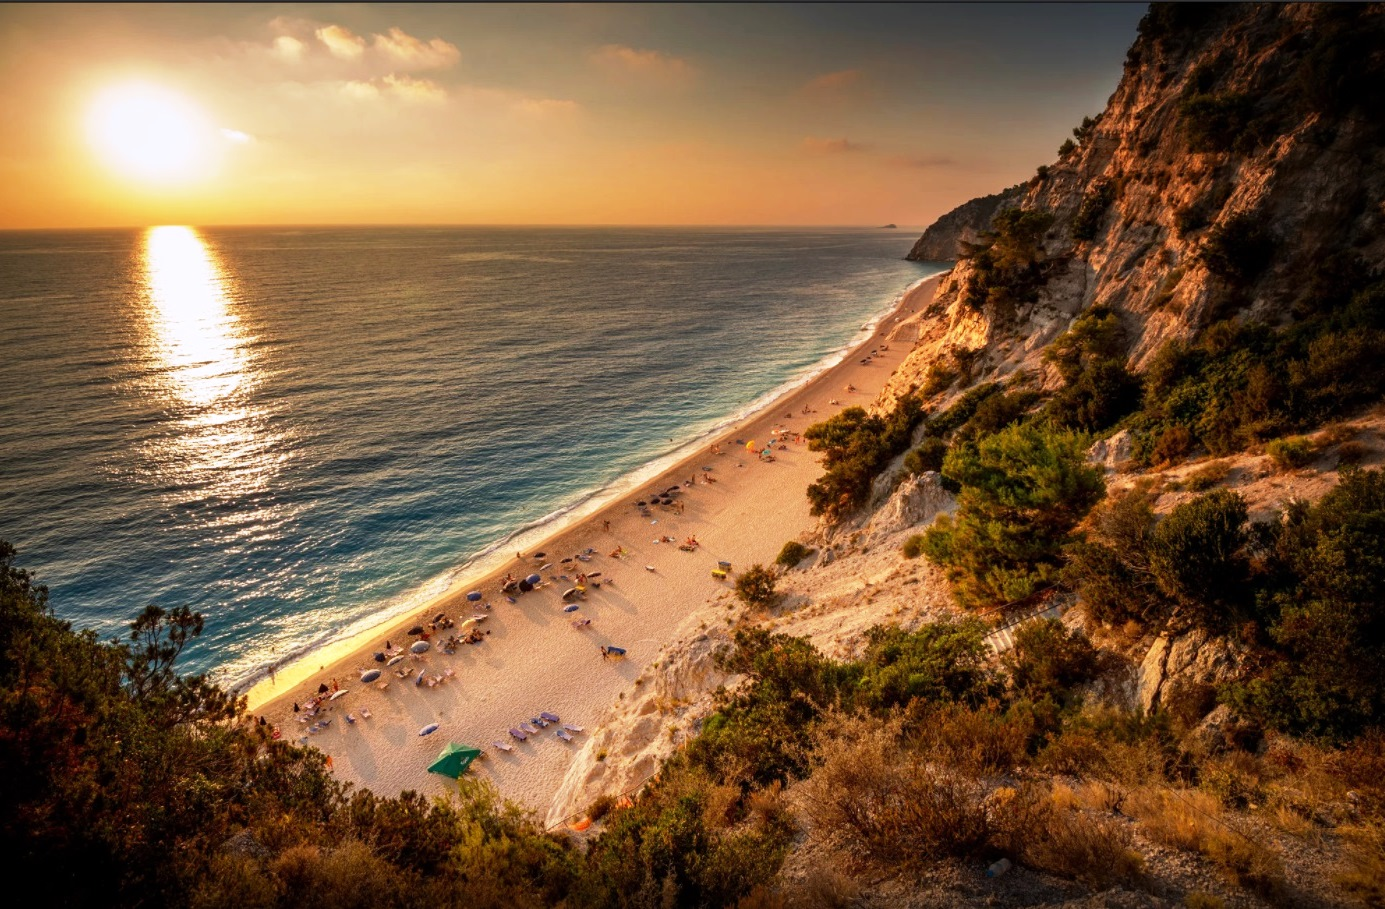 sunset beach lefkada